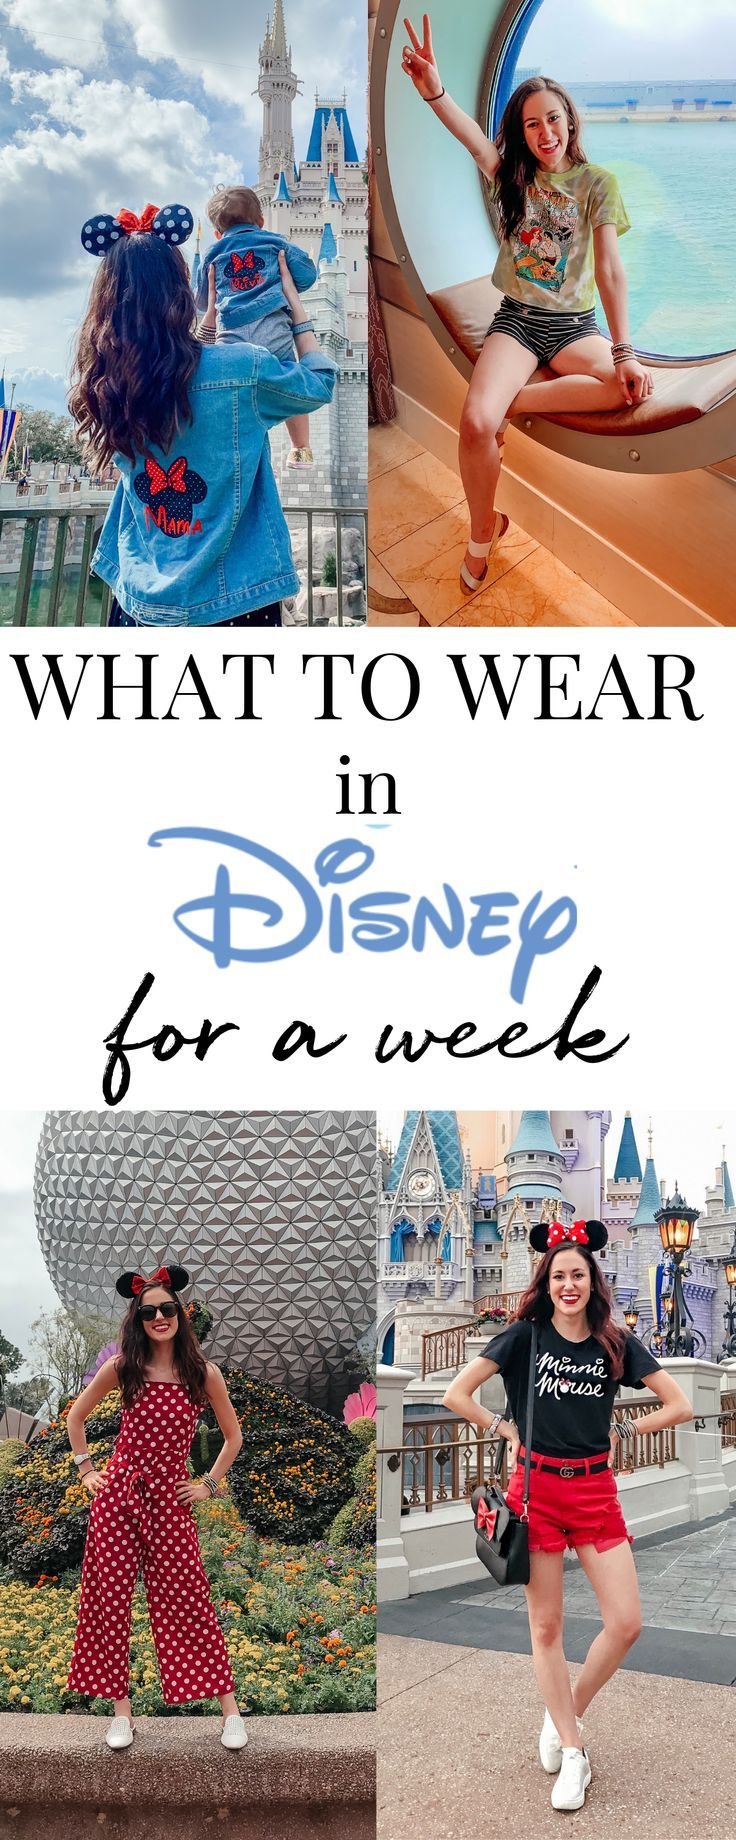 MY DISNEY OUTFITS - What to Wear to Disney for a Week!